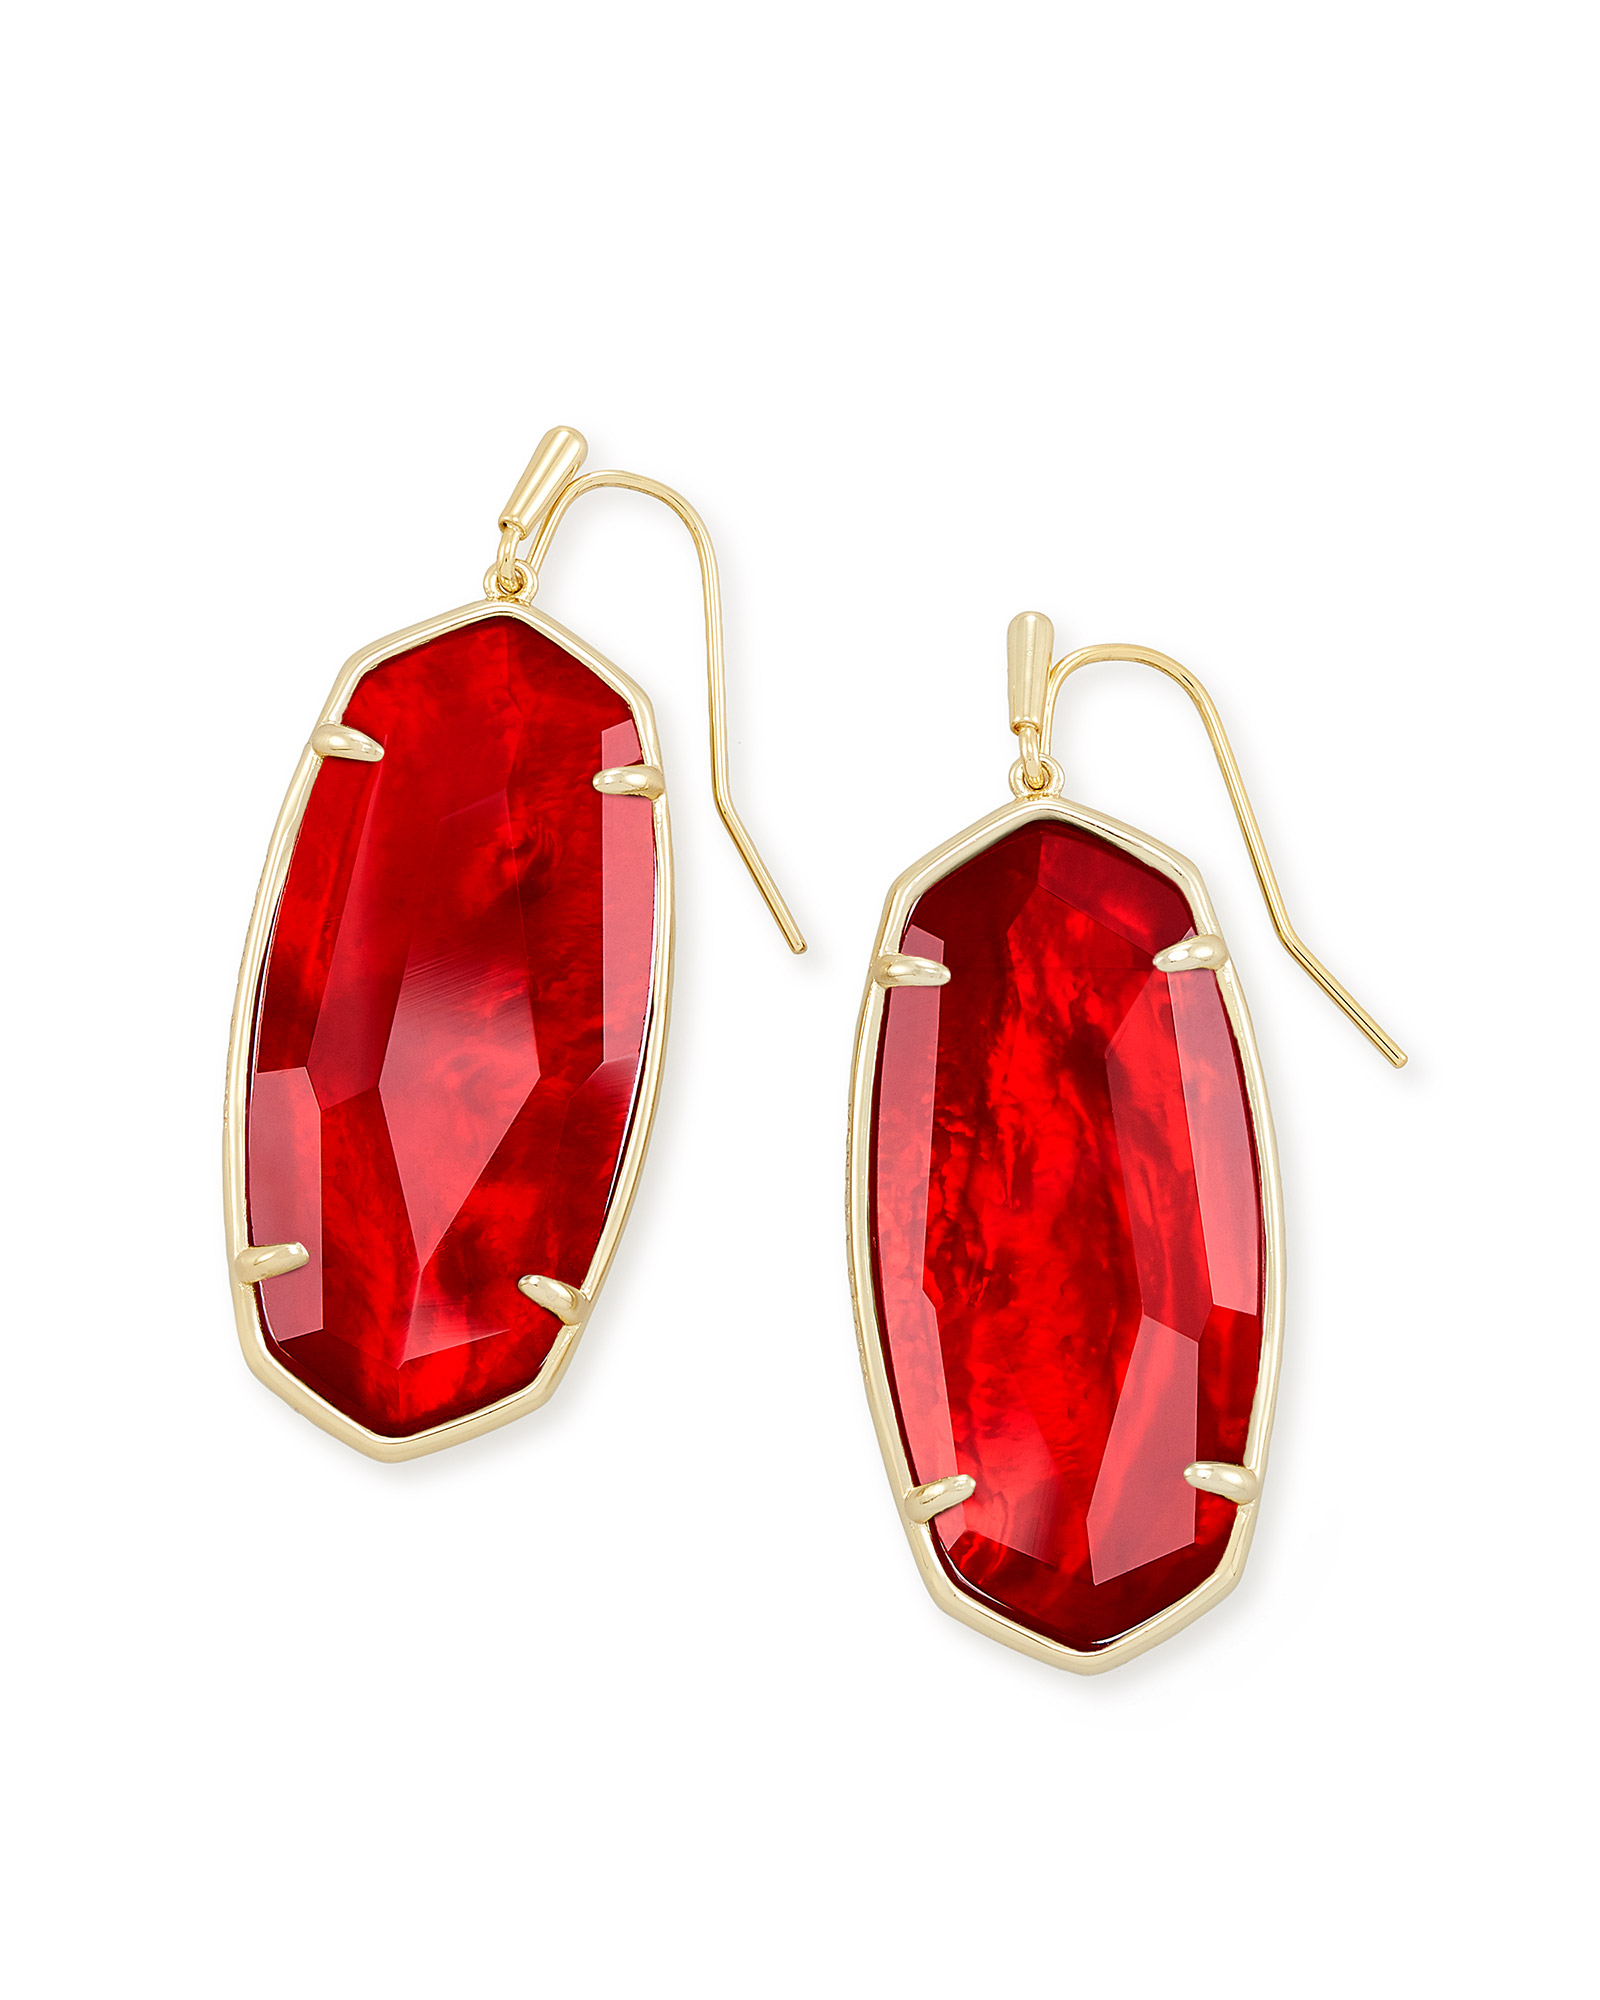 Faceted Elle Gold Drop Earrings in Cherry Red Illusion